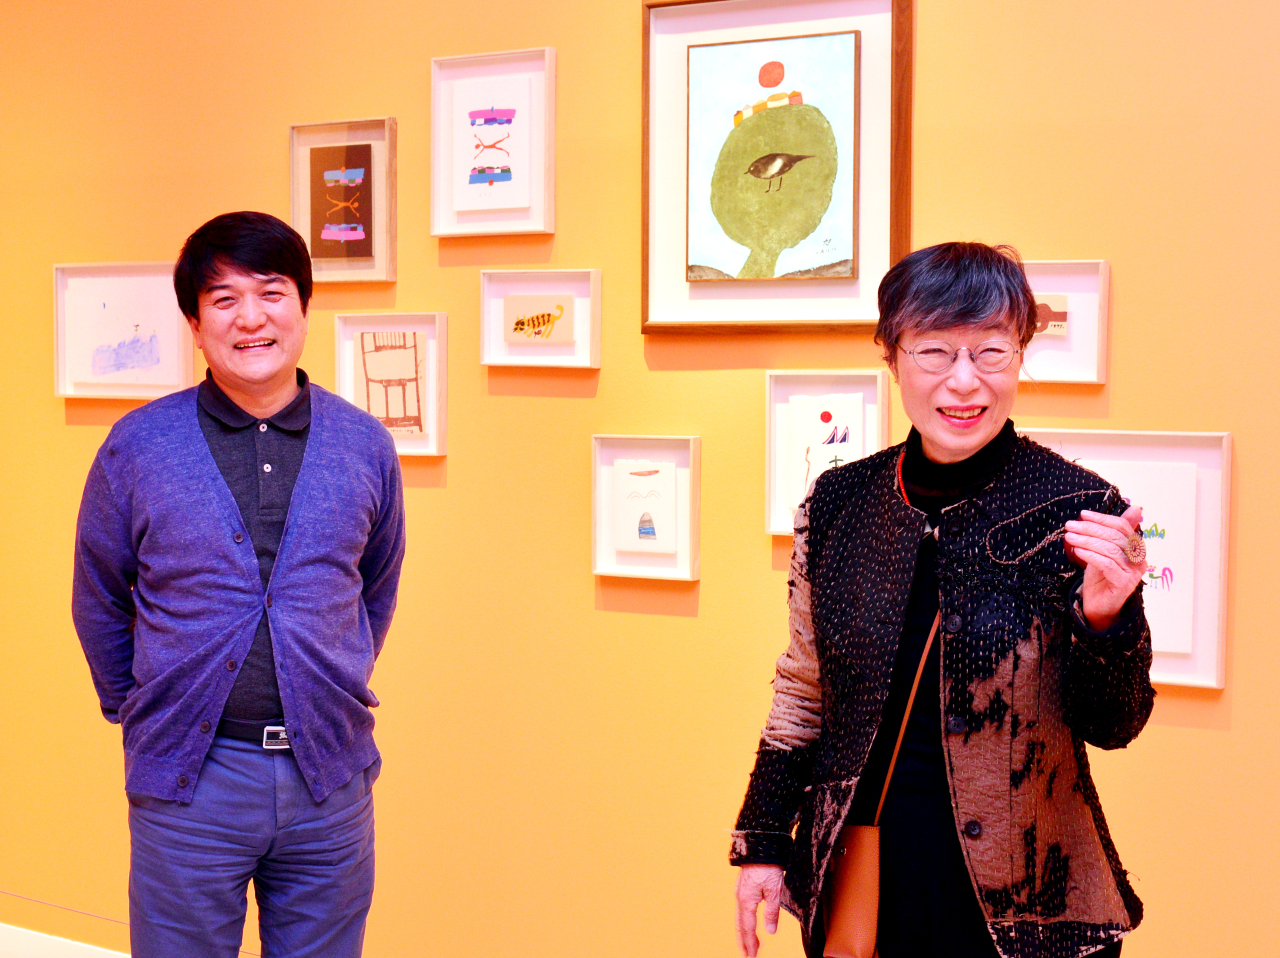 Chang Kyeong-soo (right), Chang Uc-chin's daughter and the honorary director of the Chang Ucchin Museum of Art, poses with Cho Hyun-young, director of the museum, in front of Chang's artworks at the museum. (Park Hyun-koo/The Korea Herald)